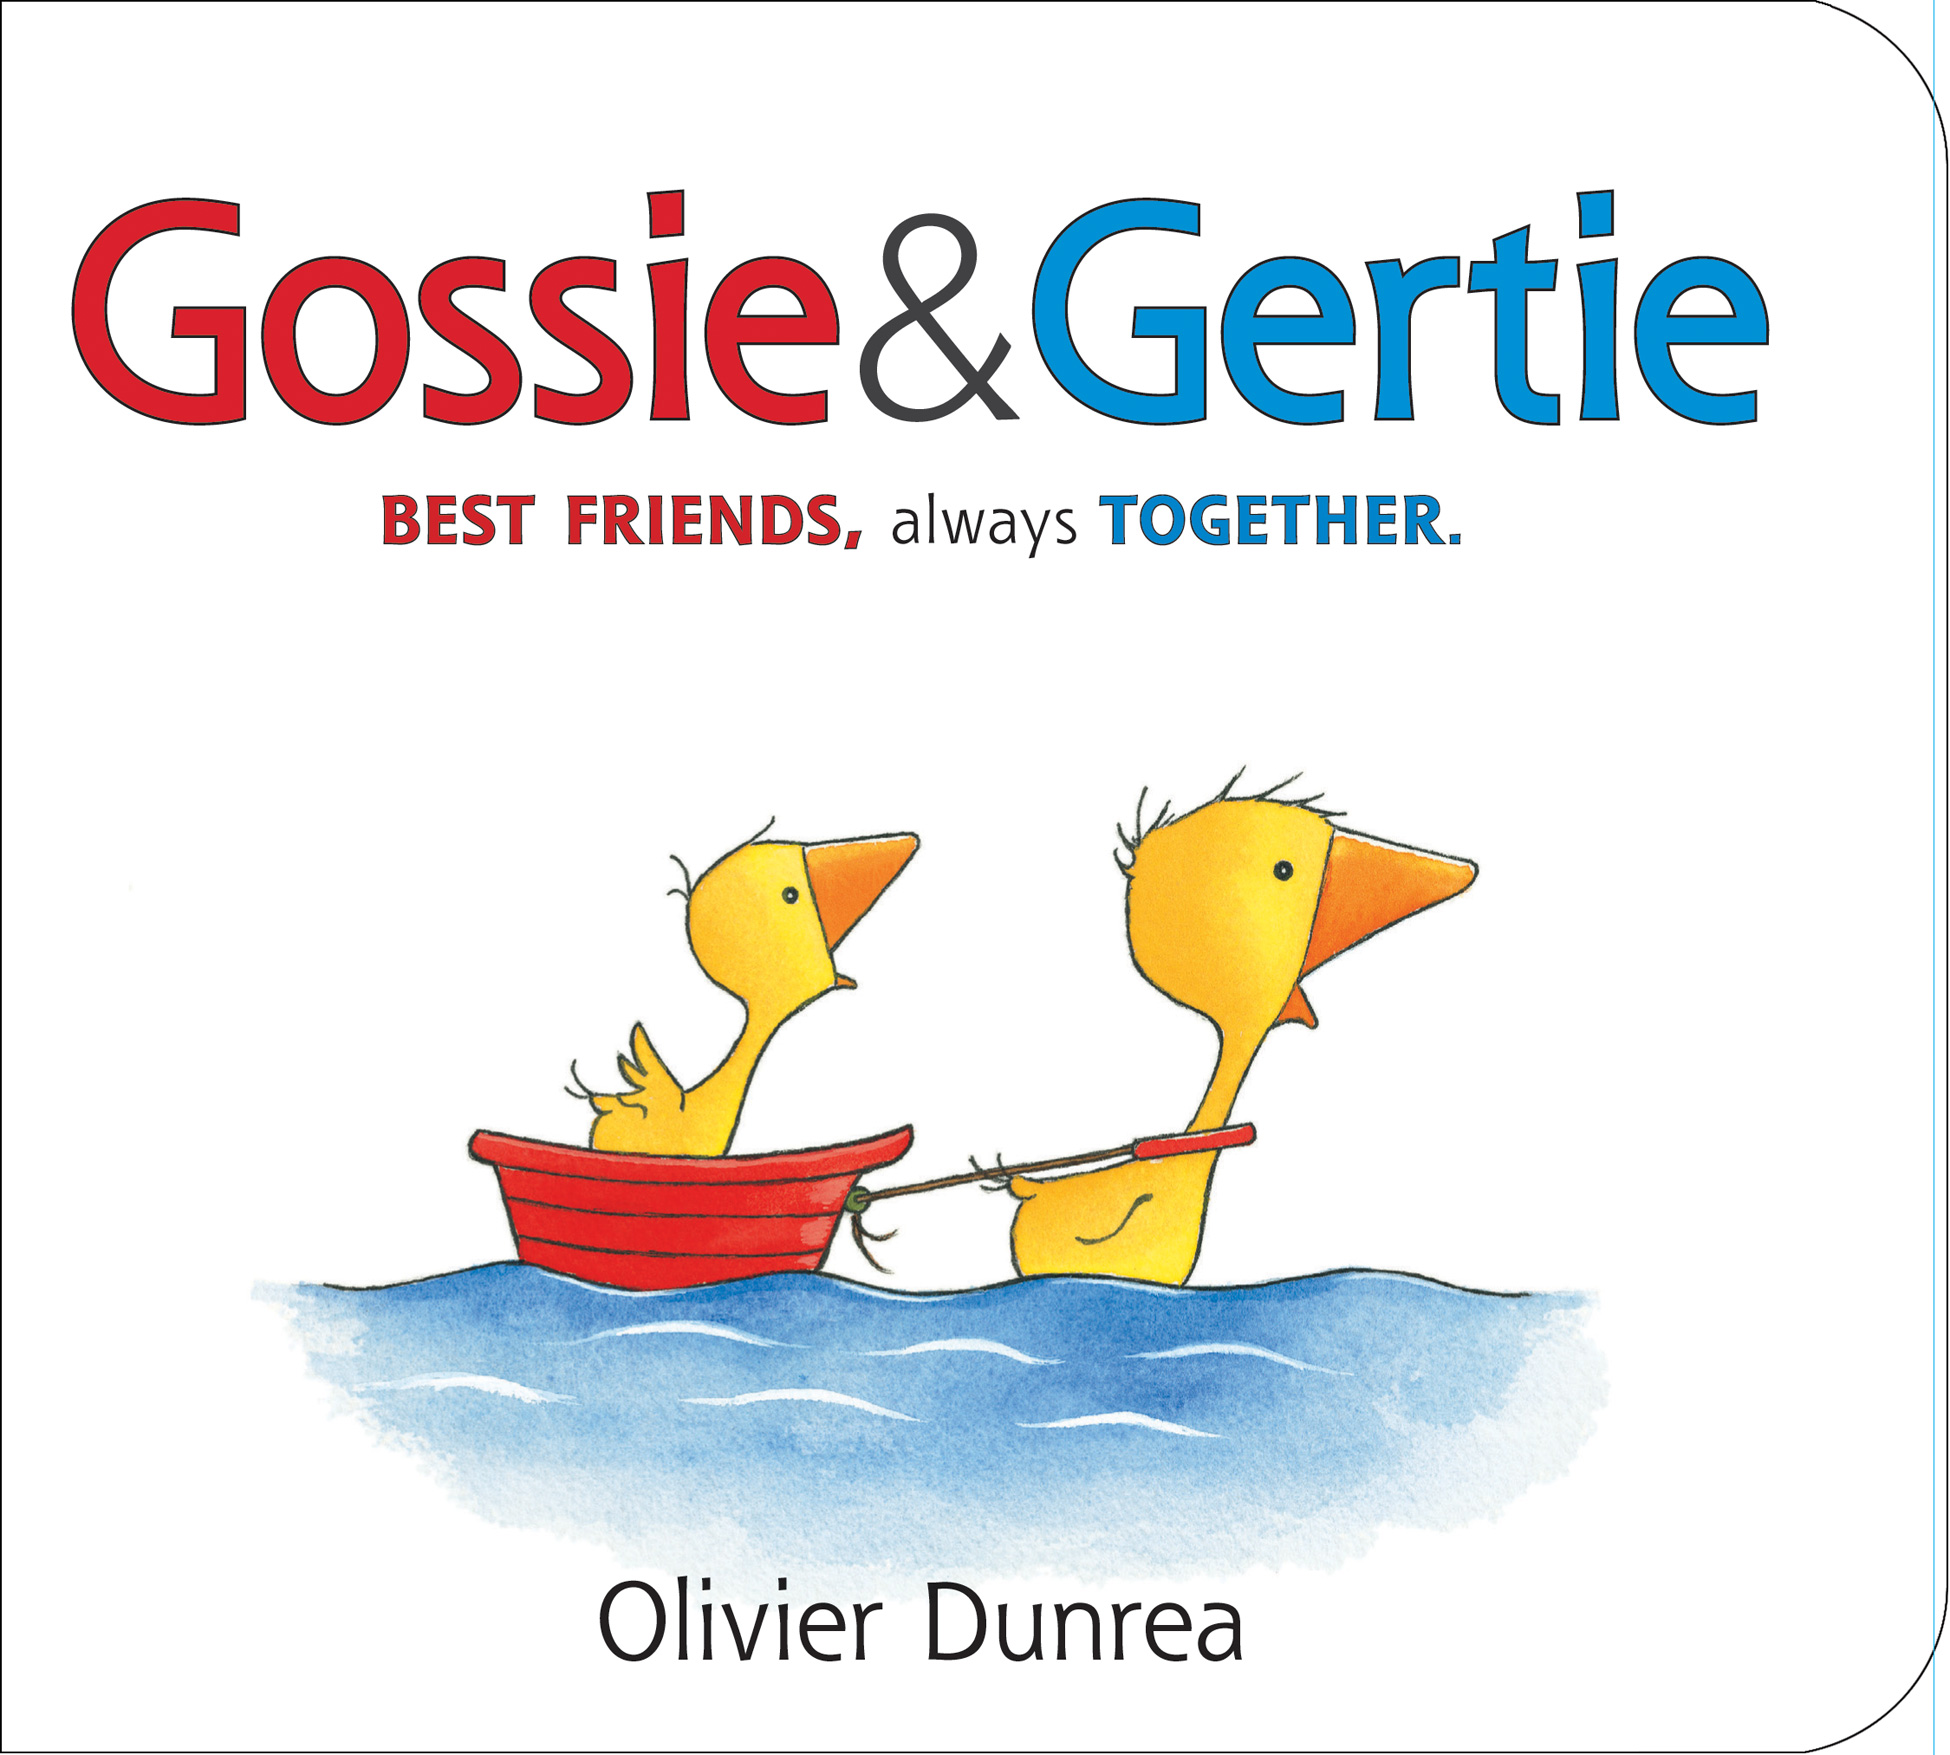 Gossie & Gertie padded board book-9780544506442